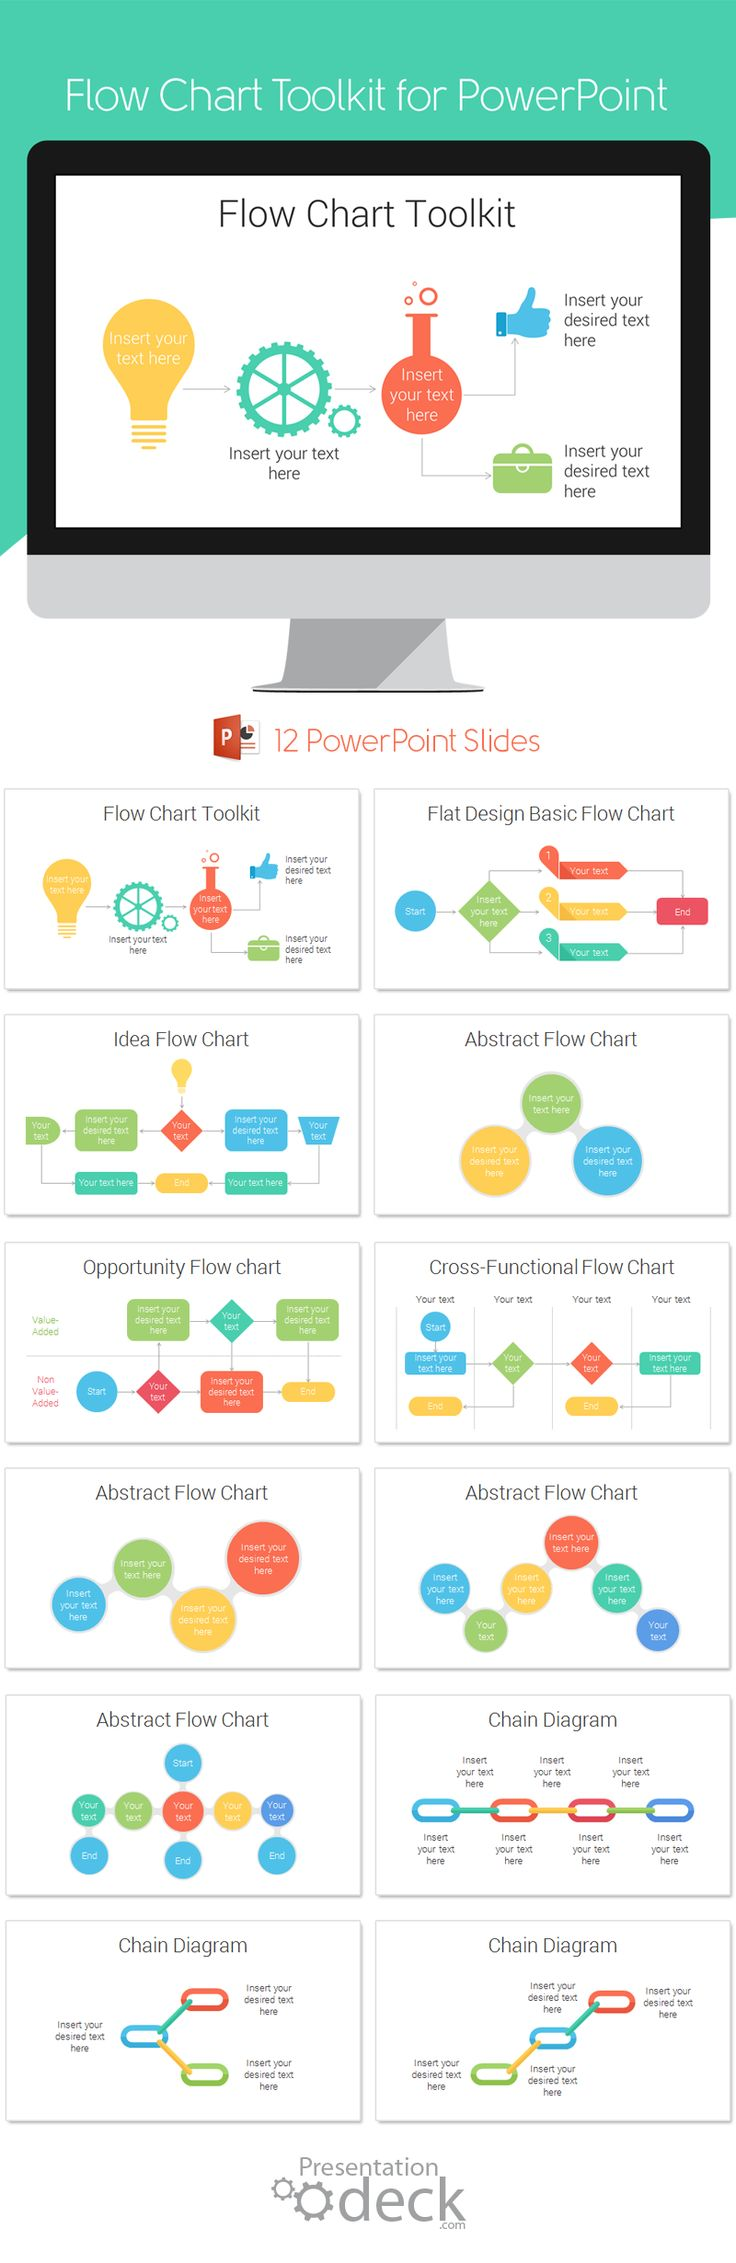 Flow Chart Toolkit PowerPoint template with 12 pre-designed slides with colorful infographics. #powerpoint #presentation #flowchart